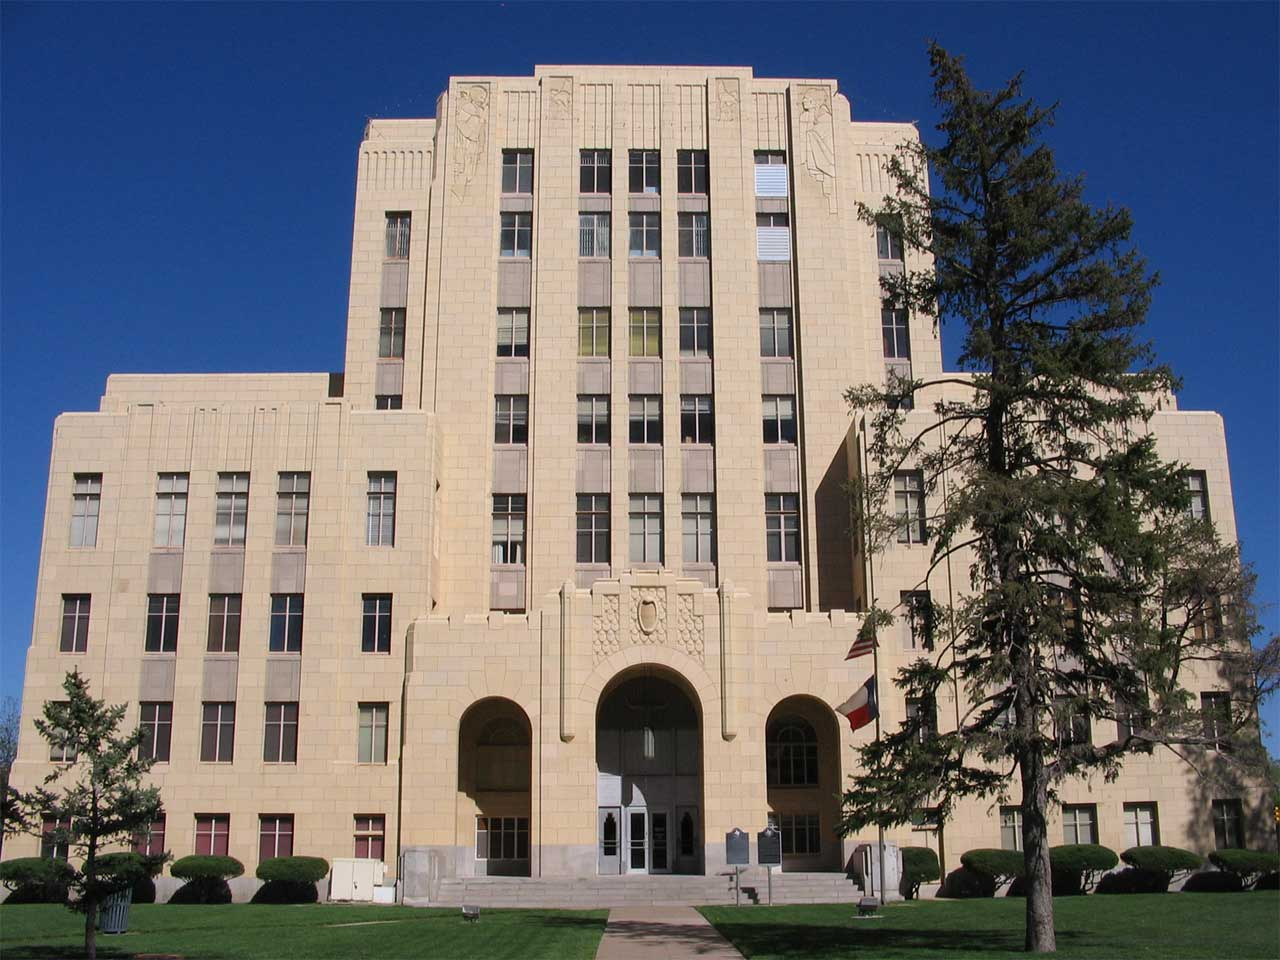 The Potter County Courthouse was built in 1932. It is an excellent example of Art Deco architecture.